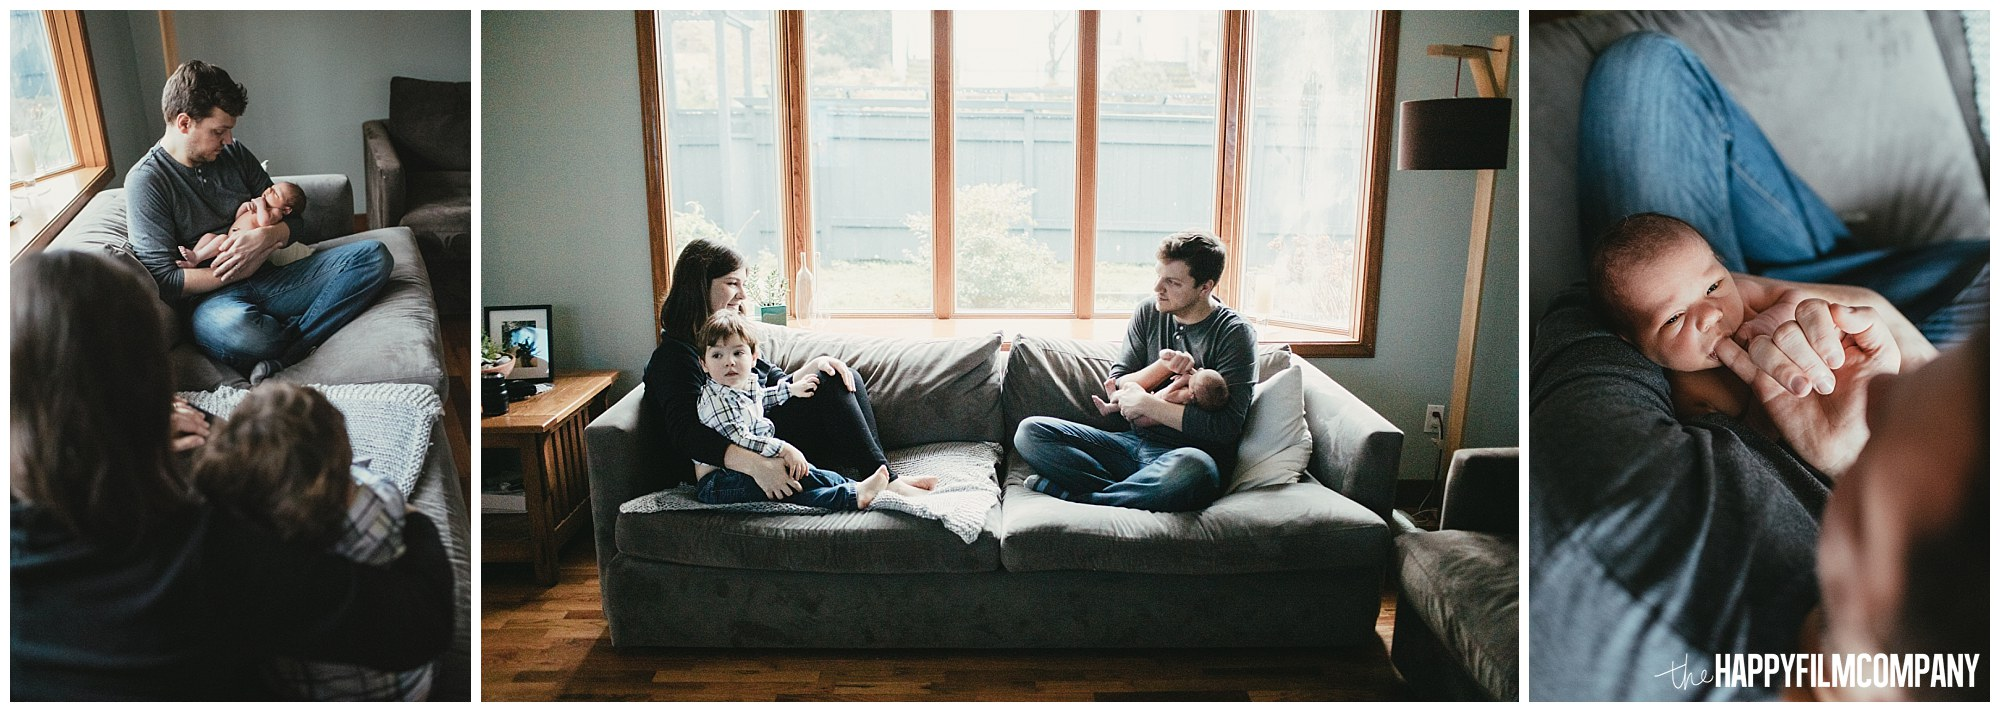 the Happy Film Company - Seattle Newborn Photographer - family portraits in living room